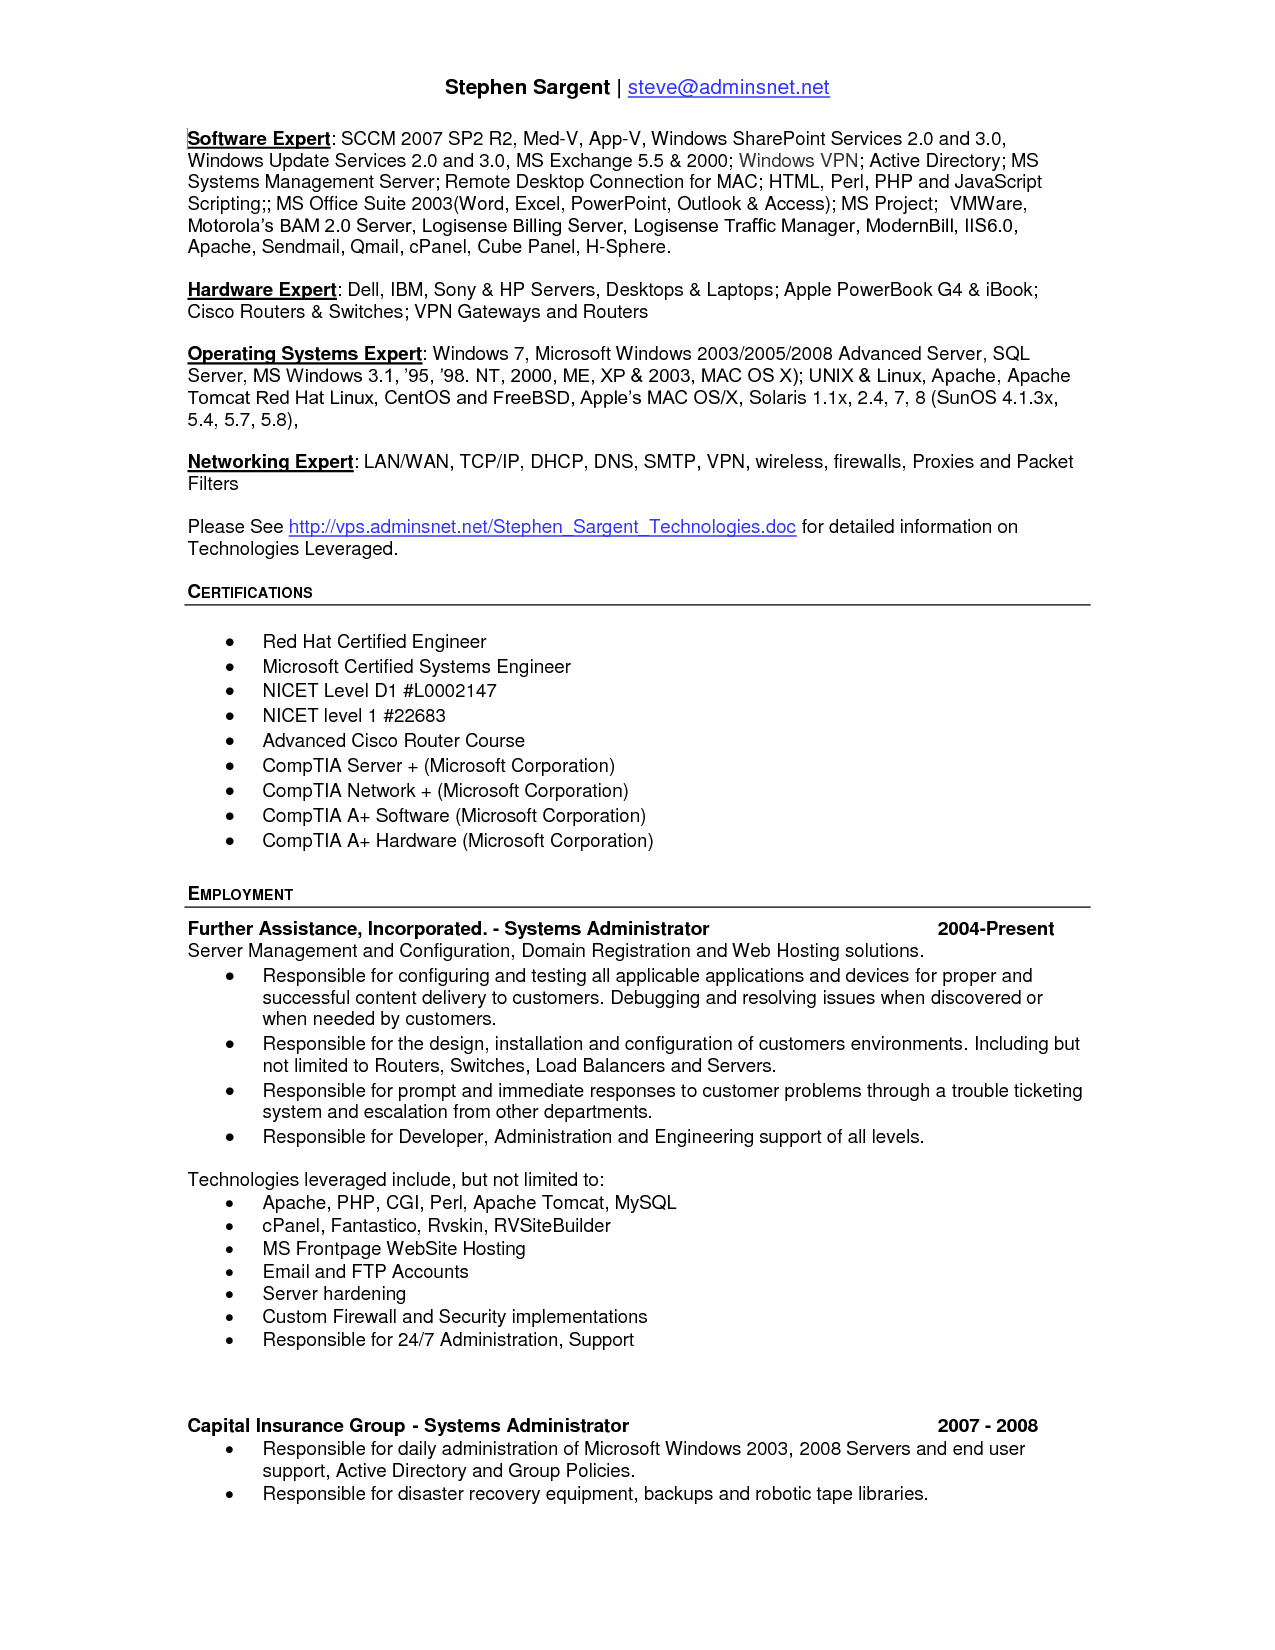 Mac Resume As Google Docs Resume Template Resume Template Mac